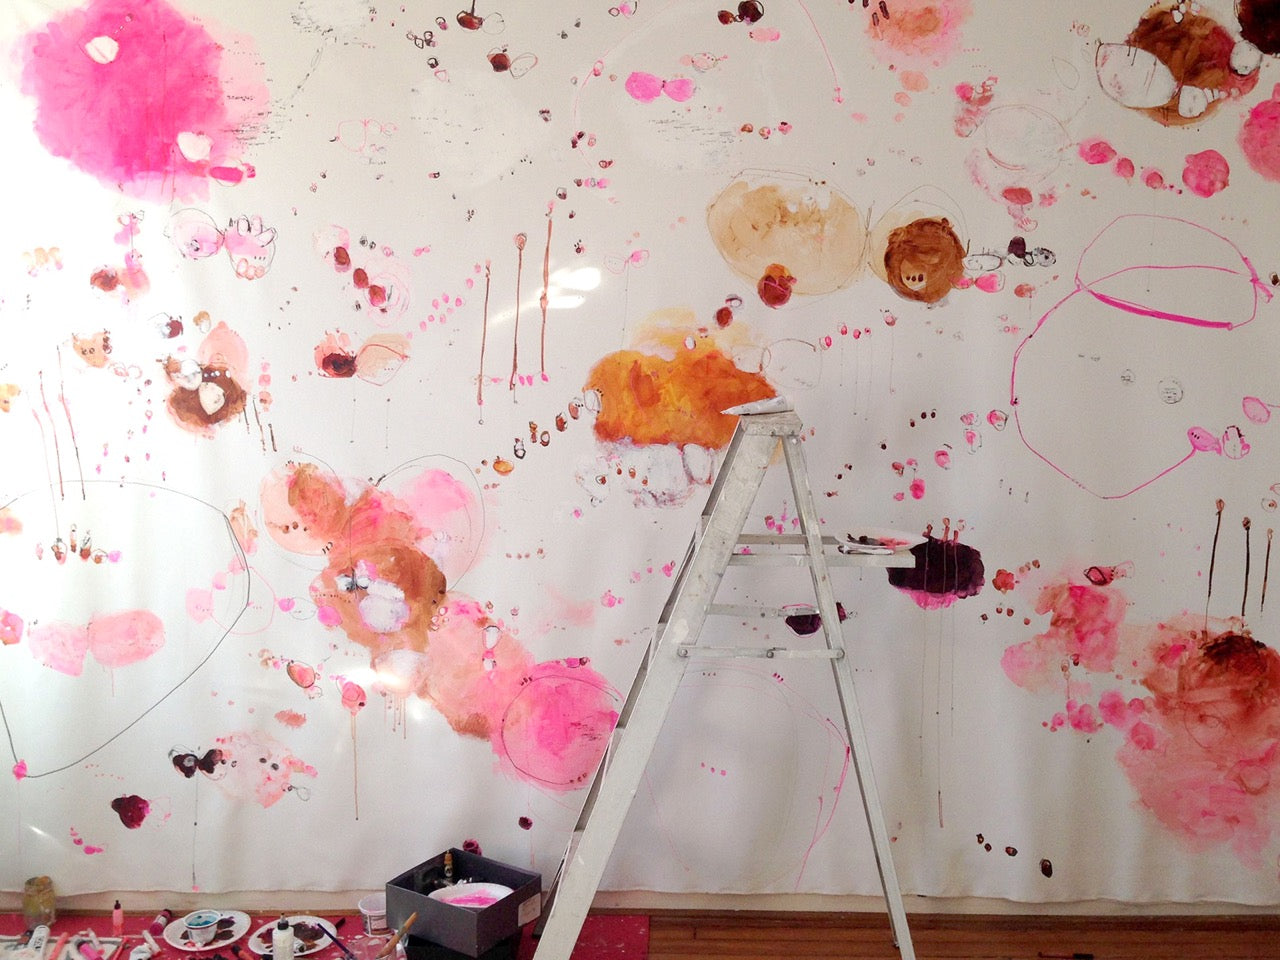 alison cooley abstract painter washington dc maryland pink painting